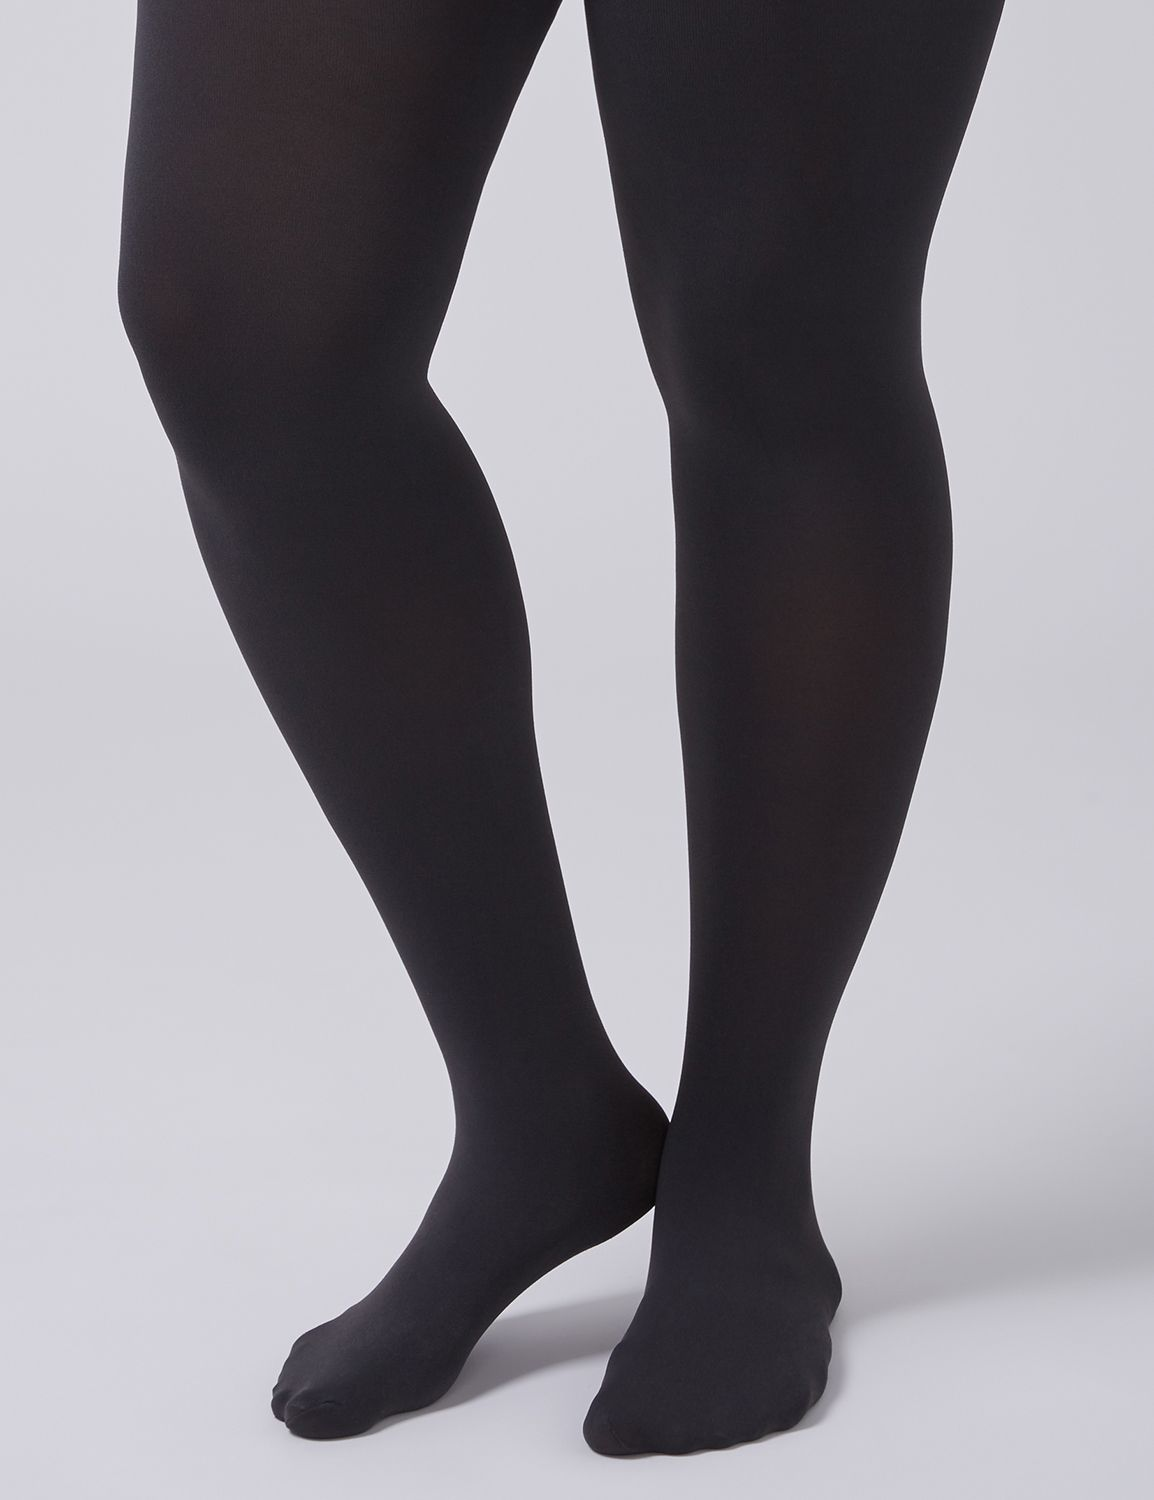 Lane Bryant Women's Control Top Solid Tights E-F Pale Grisaille